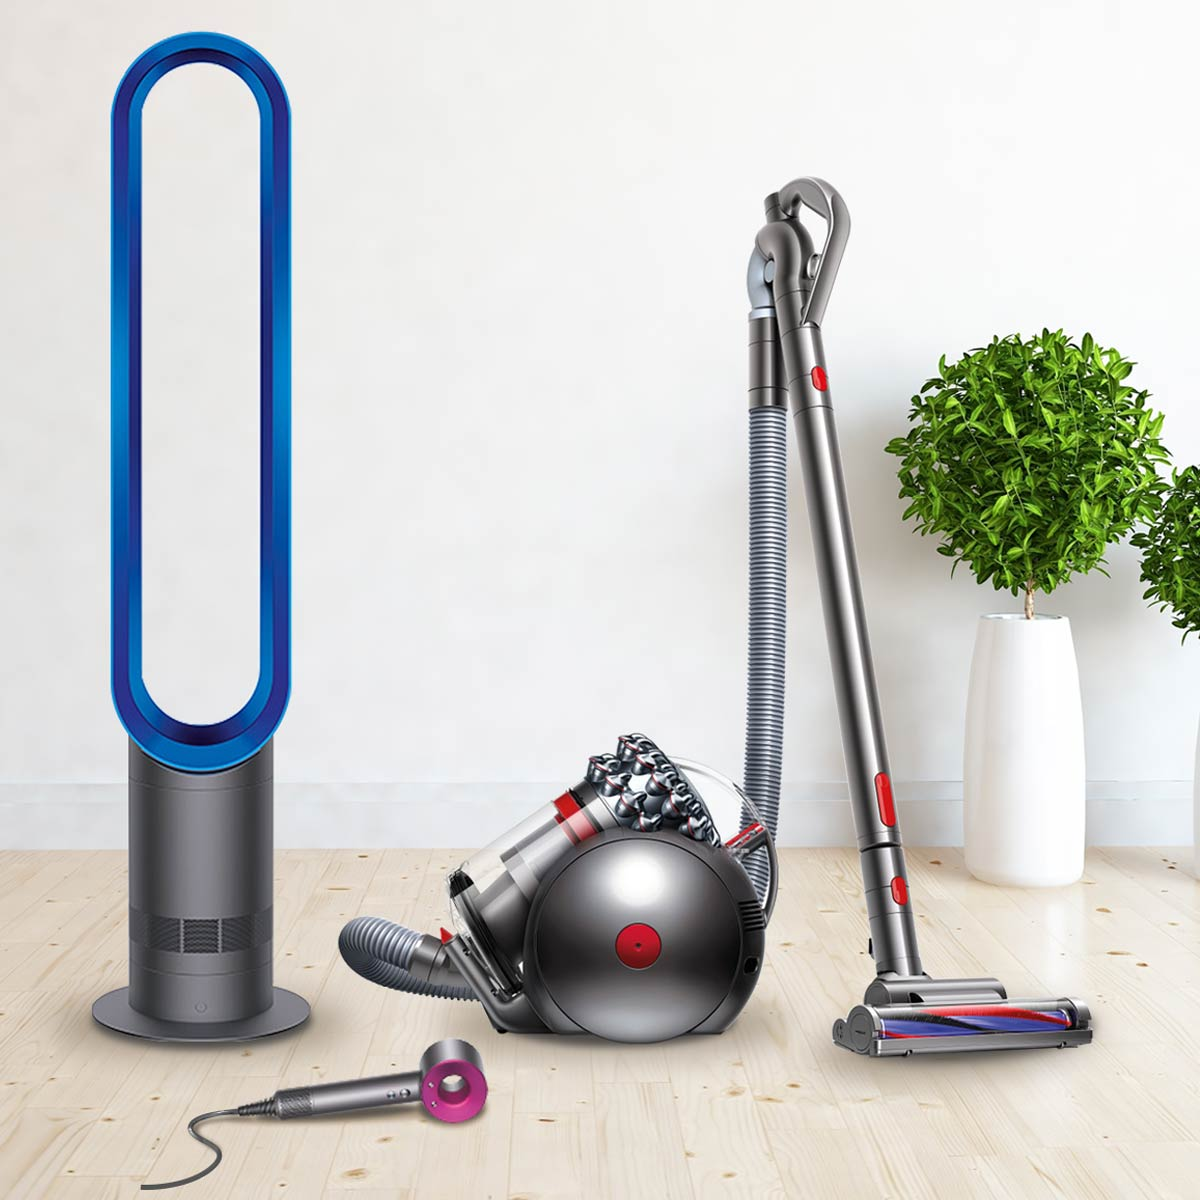 Clean up with $5,000 worth of Dyson products.